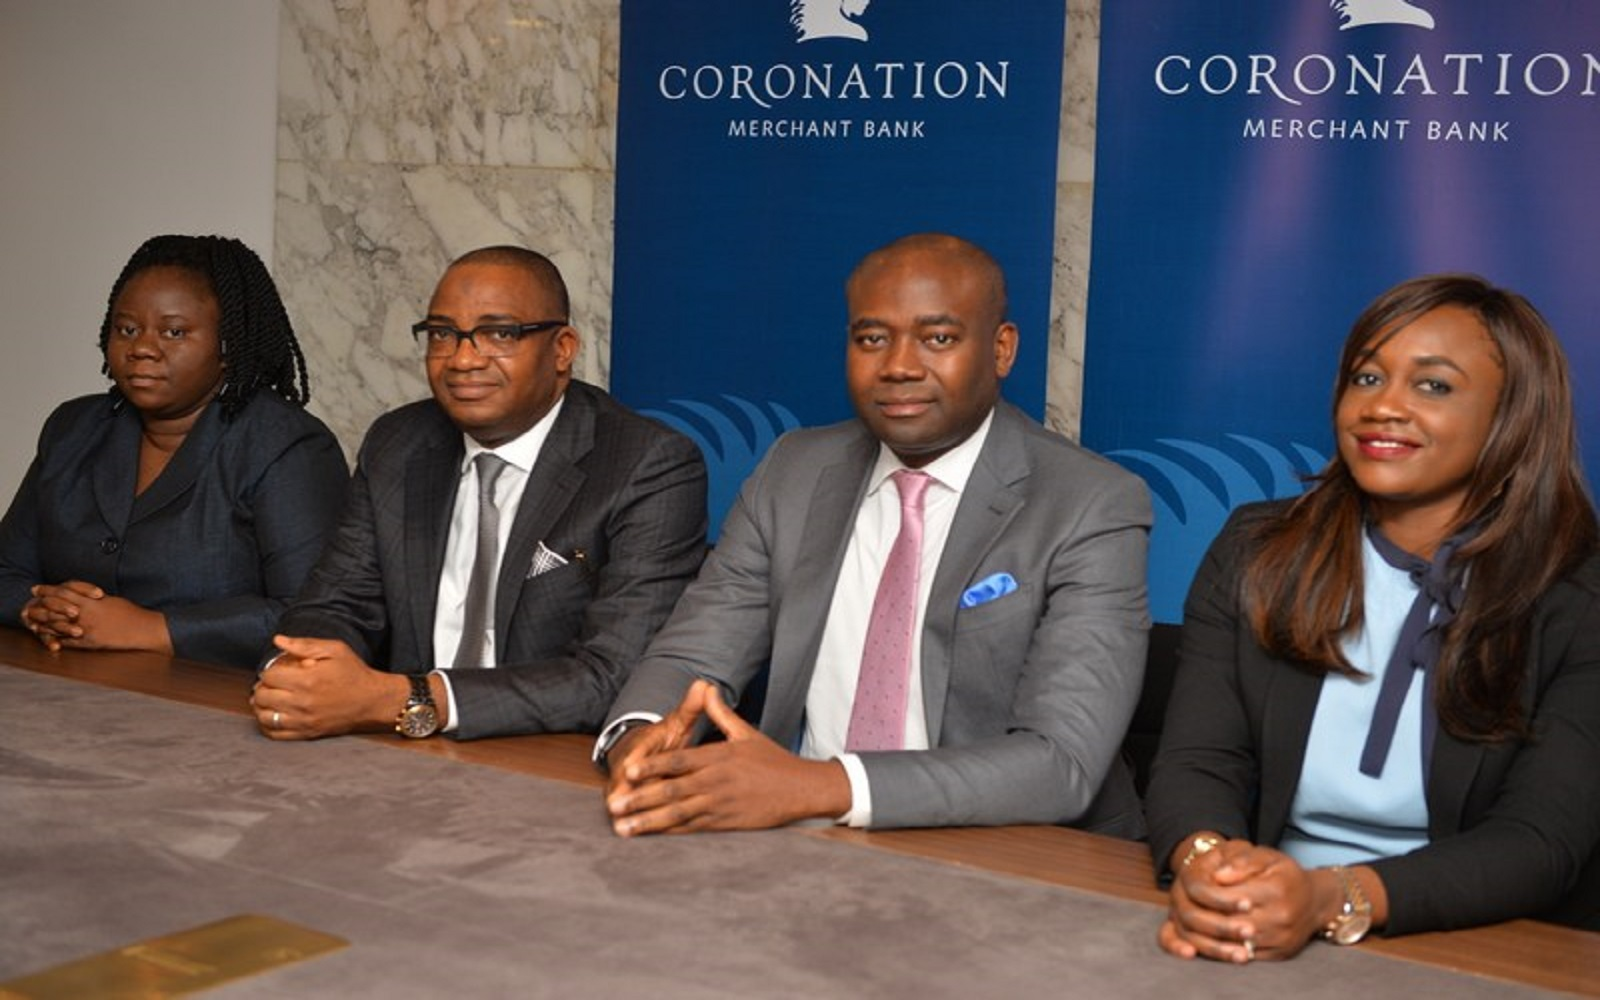 Global Banking & Finance Awards, Global Banking & Finance Awards, Coronation Merchant Bank, Coronation MB